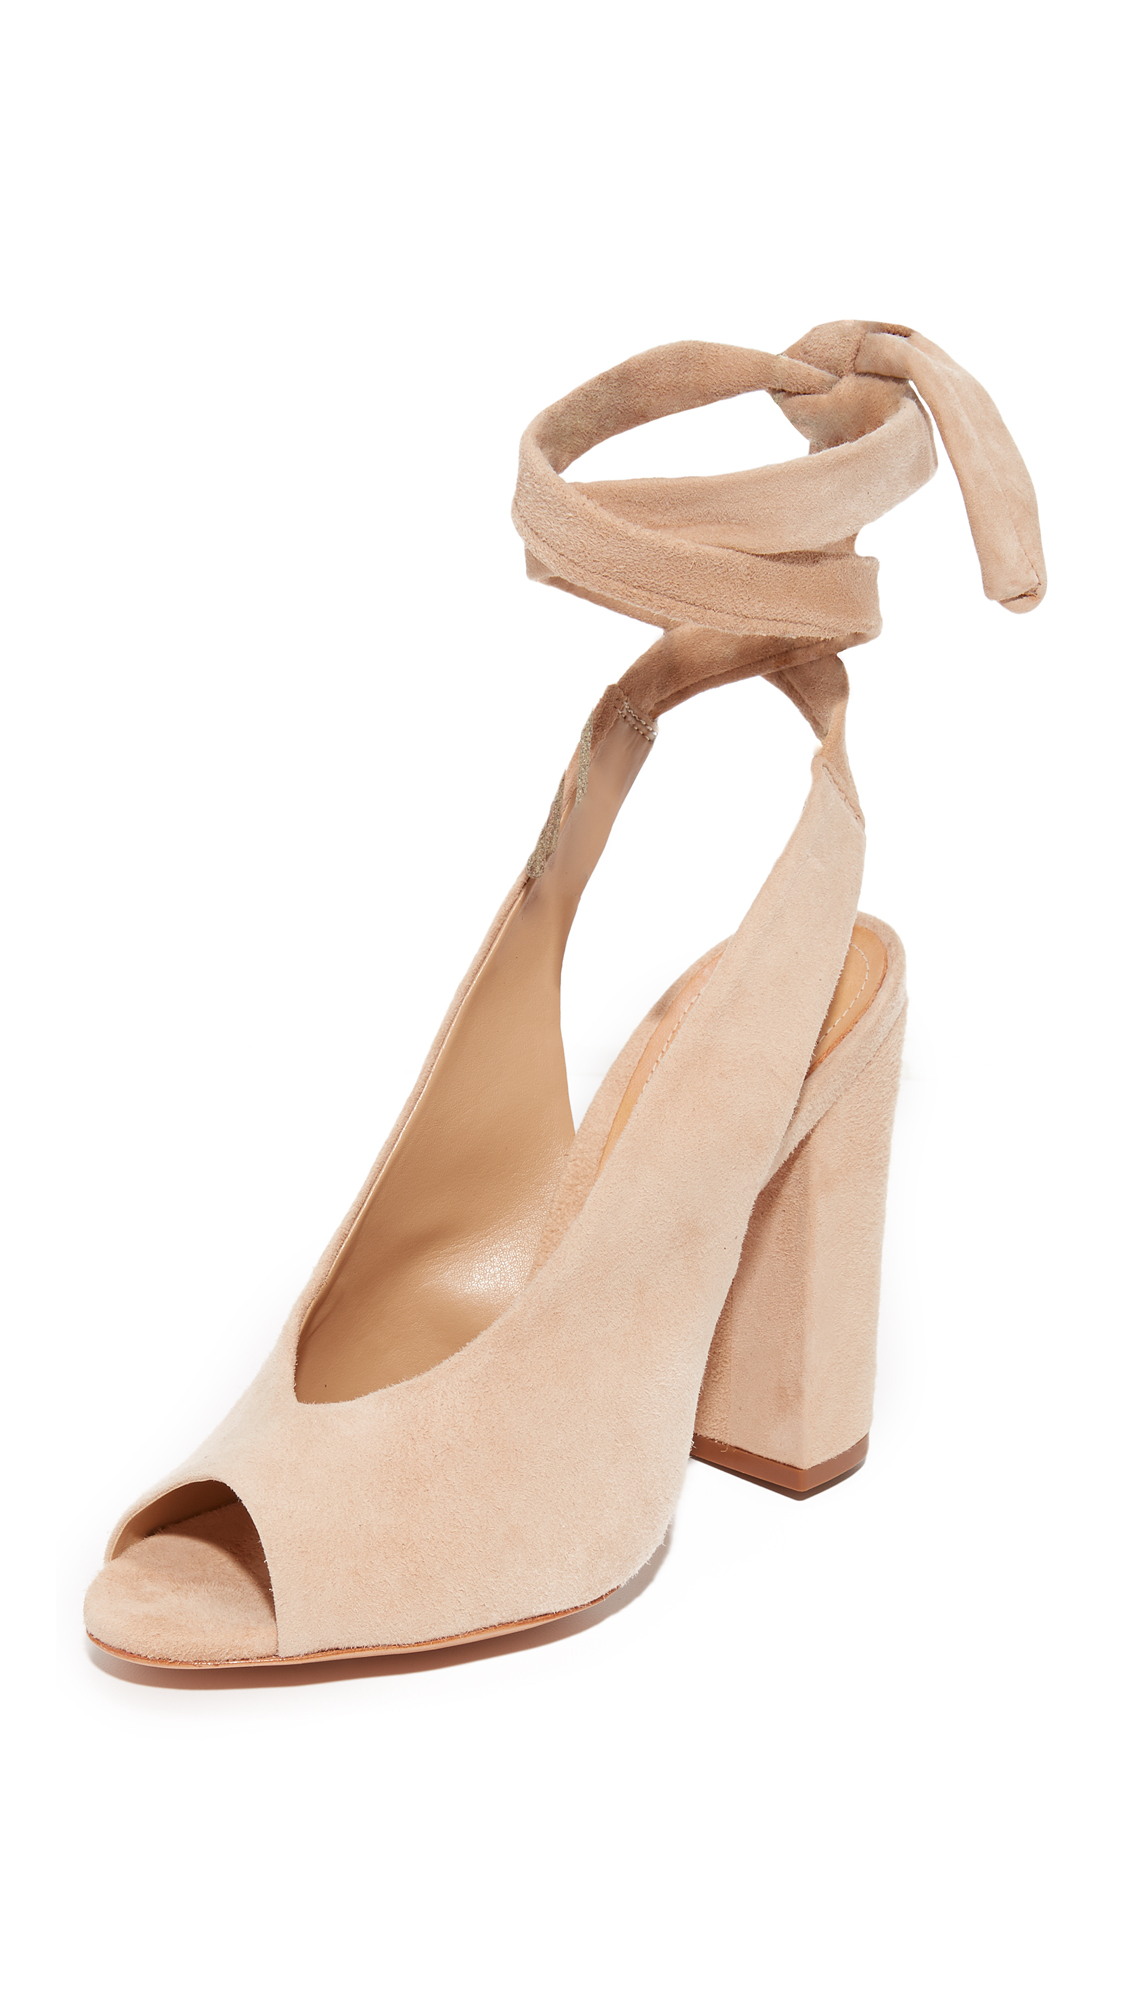 Schutz Archie Wrap Peep Toe Heels - Amber Light